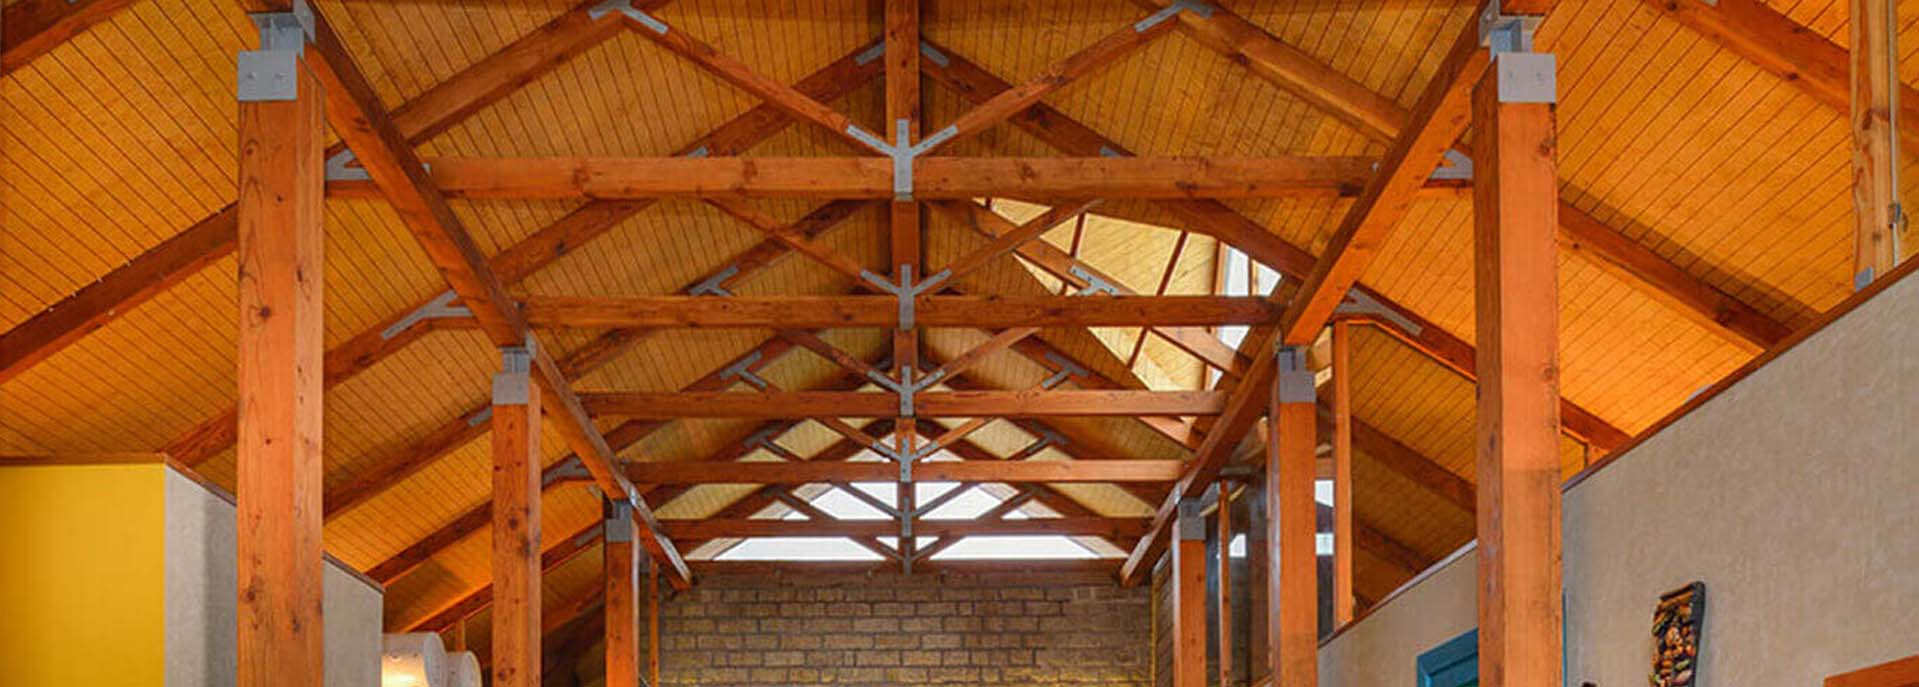 Douglas Fir for Roof Trusses